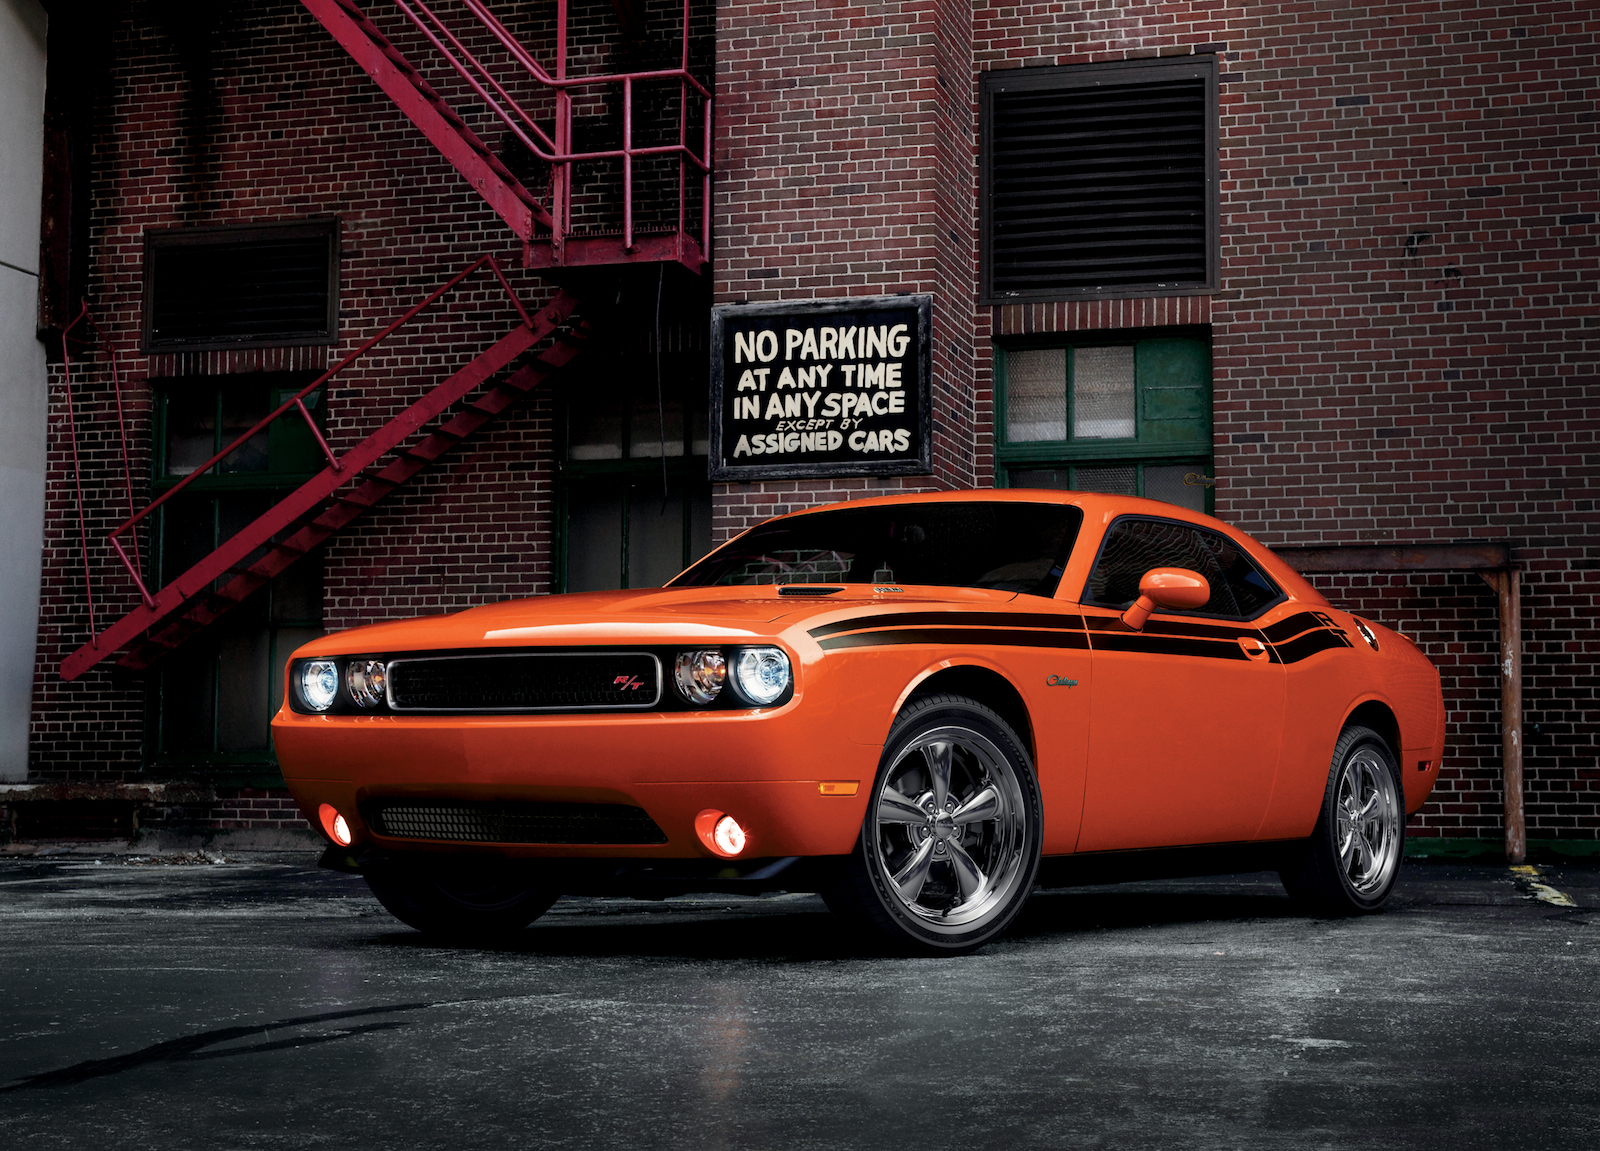 2013 dodge challenger v 8 powered r t model shown image chrysler. Cars Review. Best American Auto & Cars Review